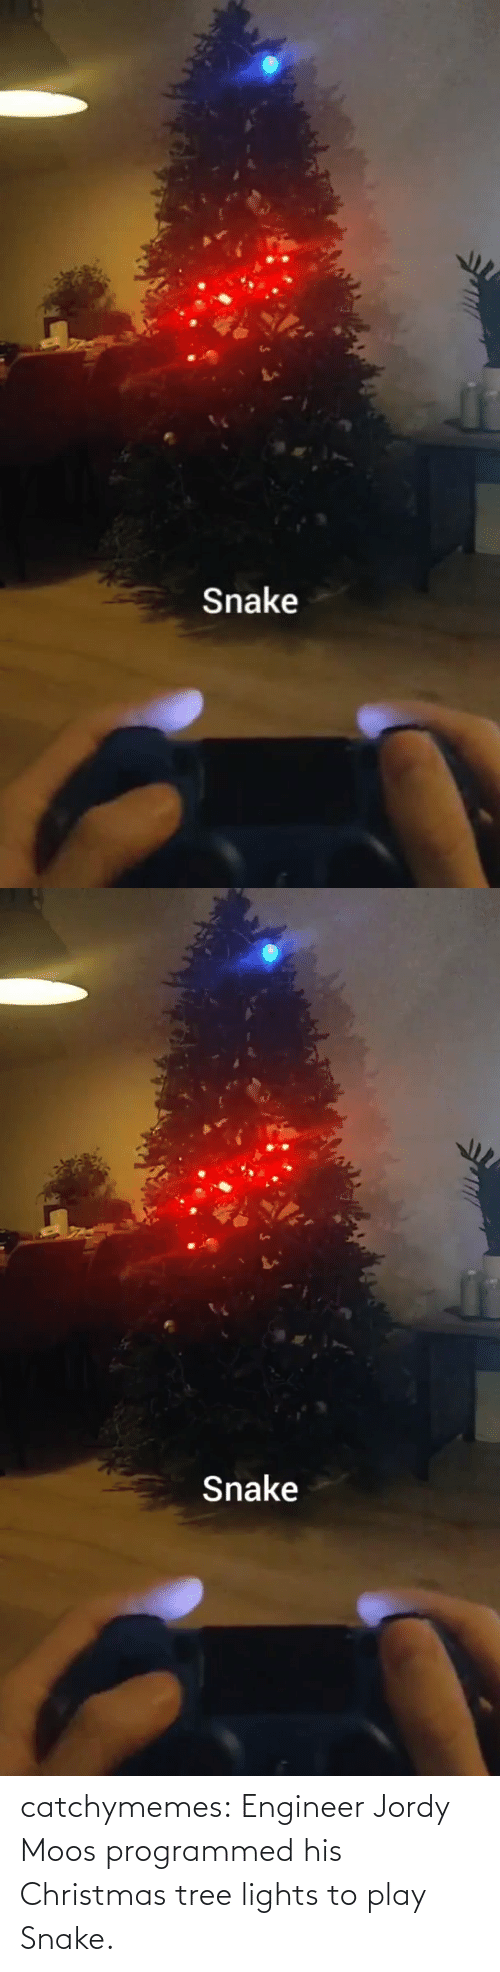 Twitter Com: Snake   Snake catchymemes:  Engineer Jordy Moos programmed his Christmas tree lights to play Snake.